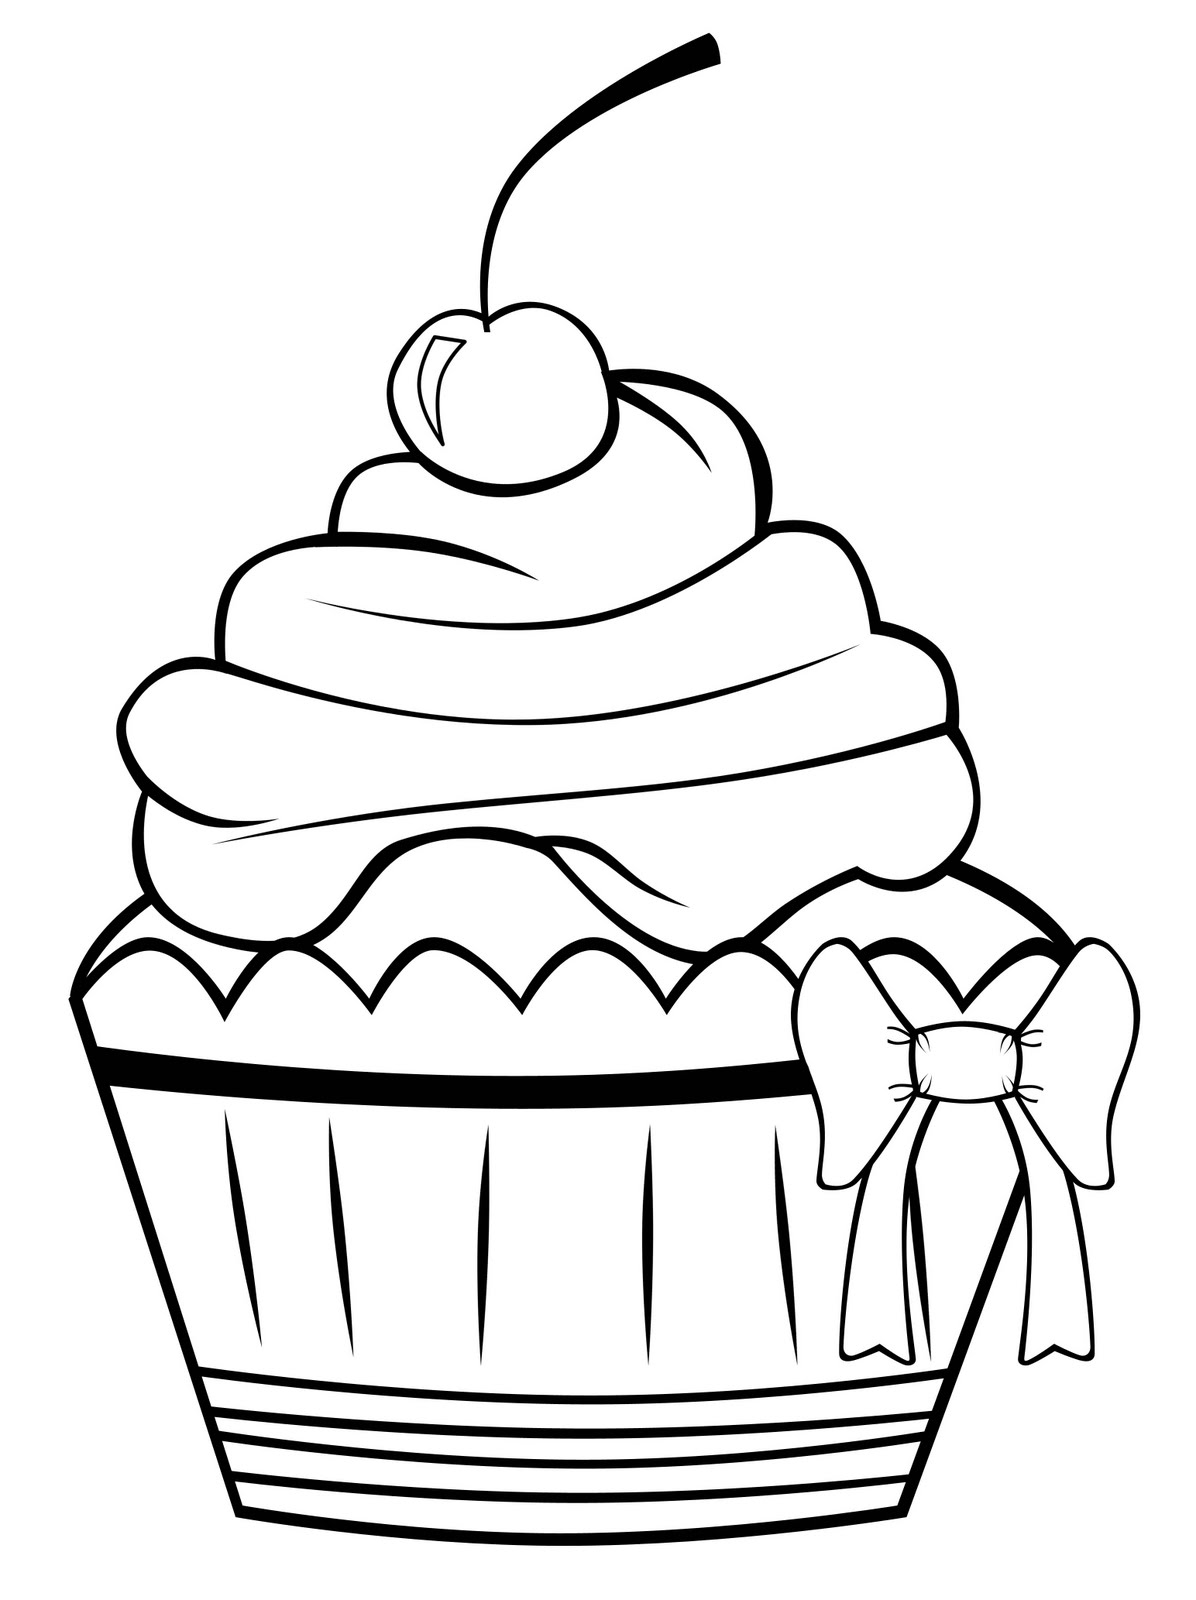 cupcake-coloriage-basic4